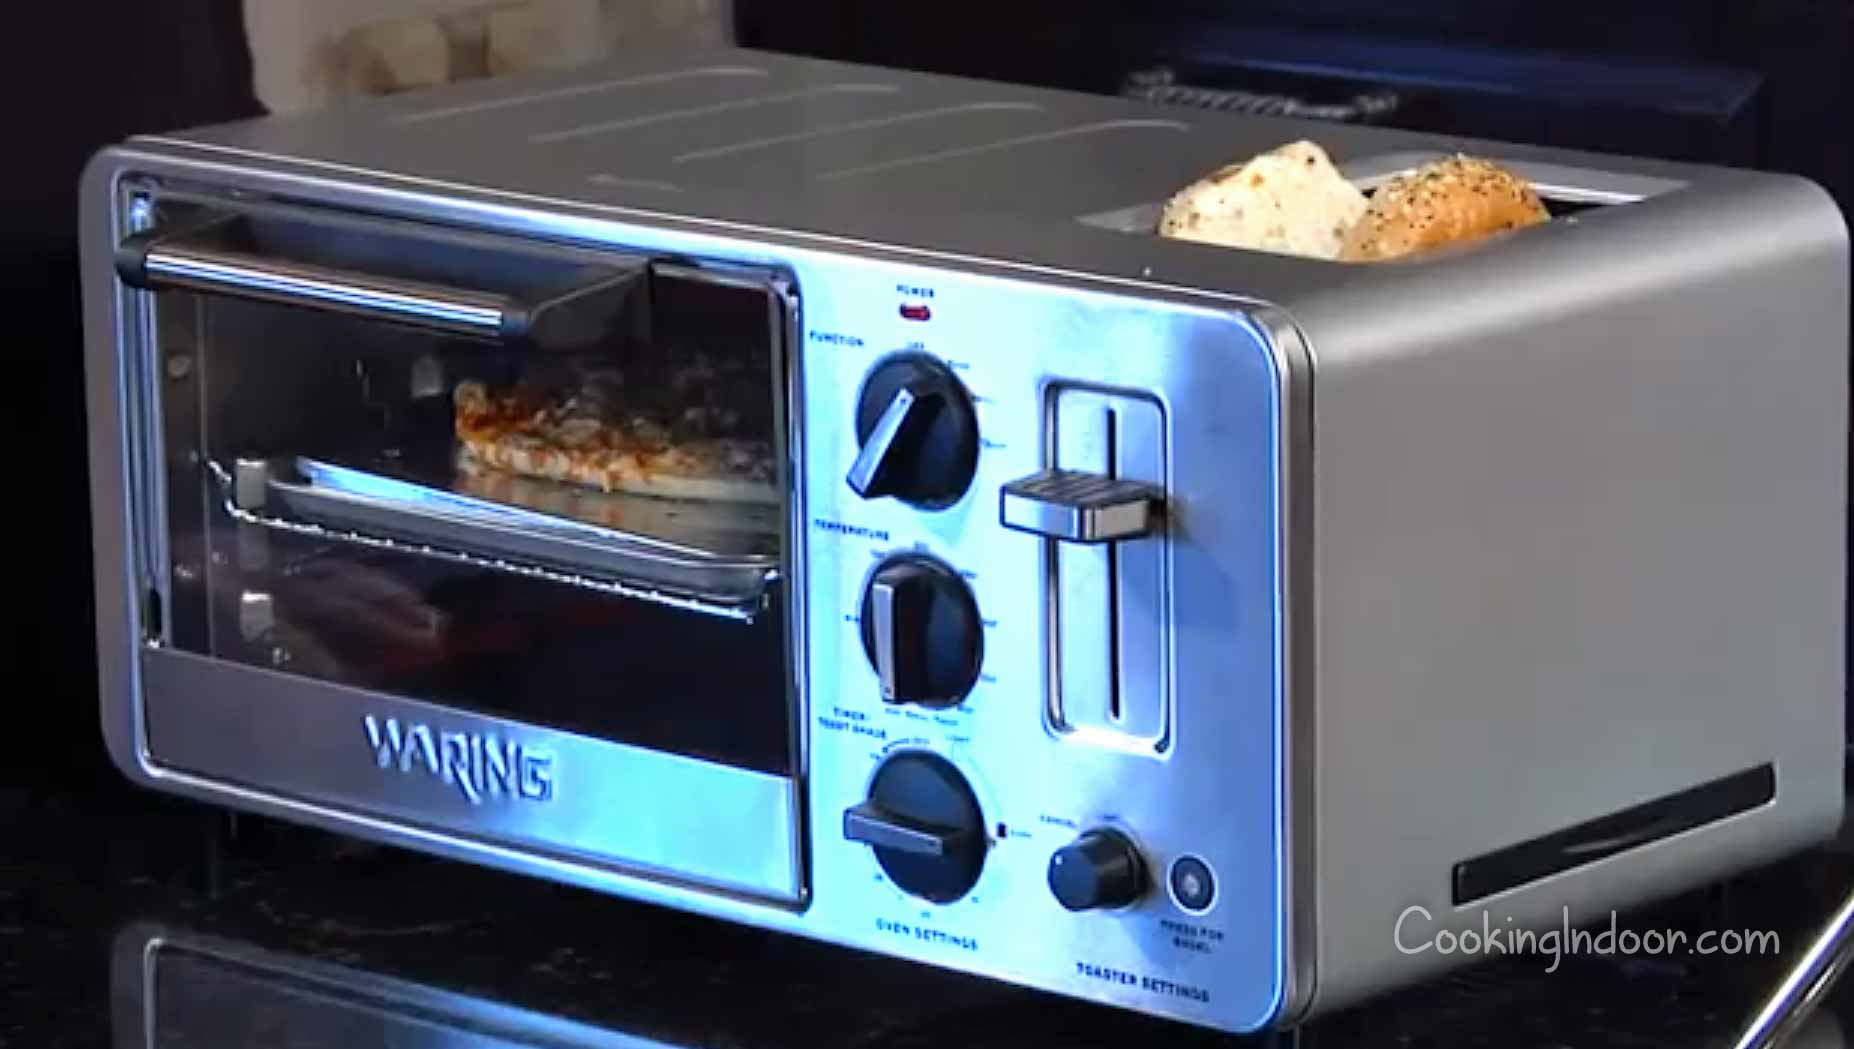 Best Waring toaster oven